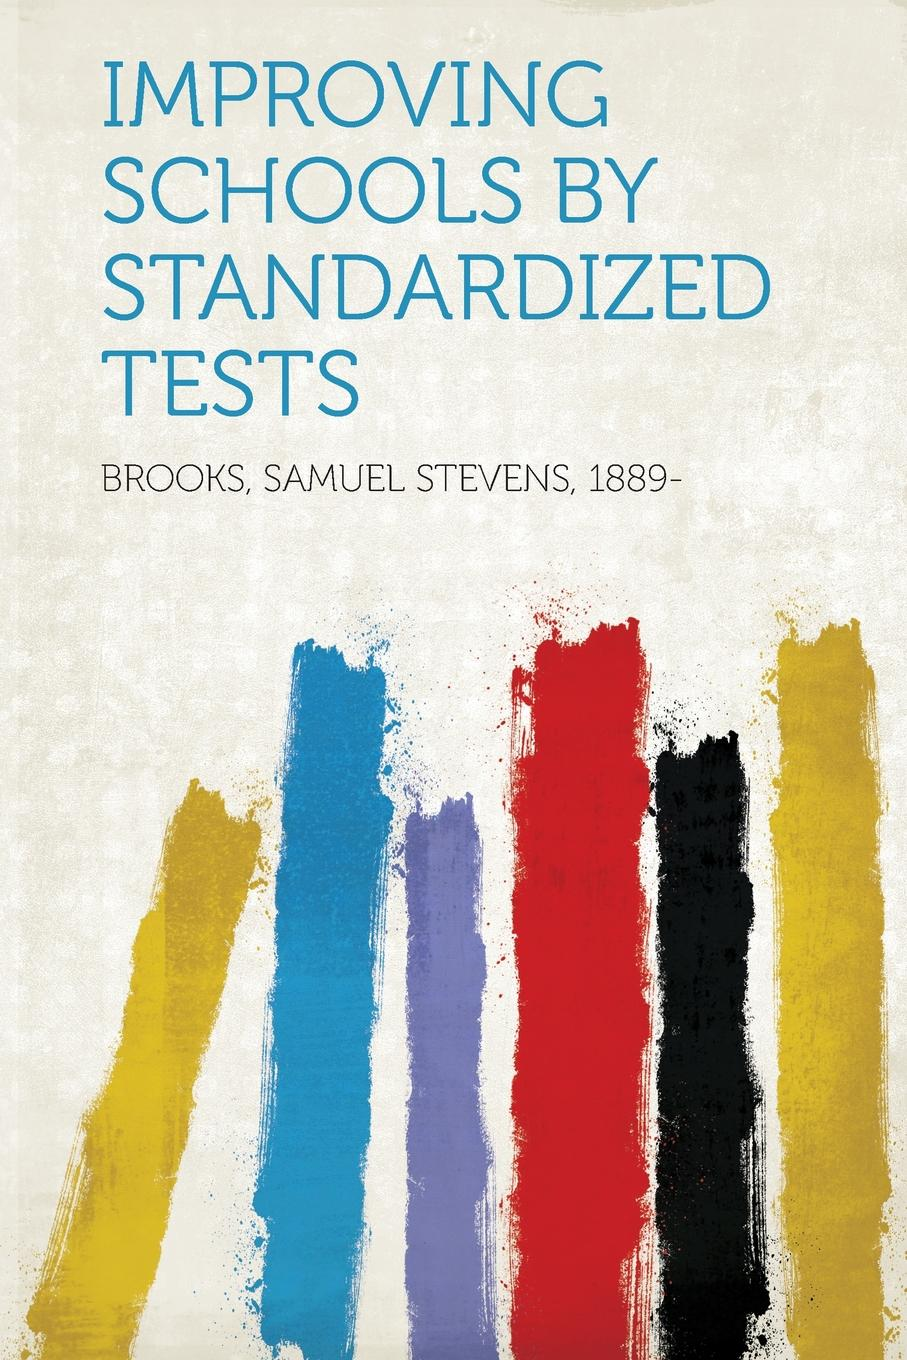 Improving Schools by Standardized Tests should standardized reading tests be untimed